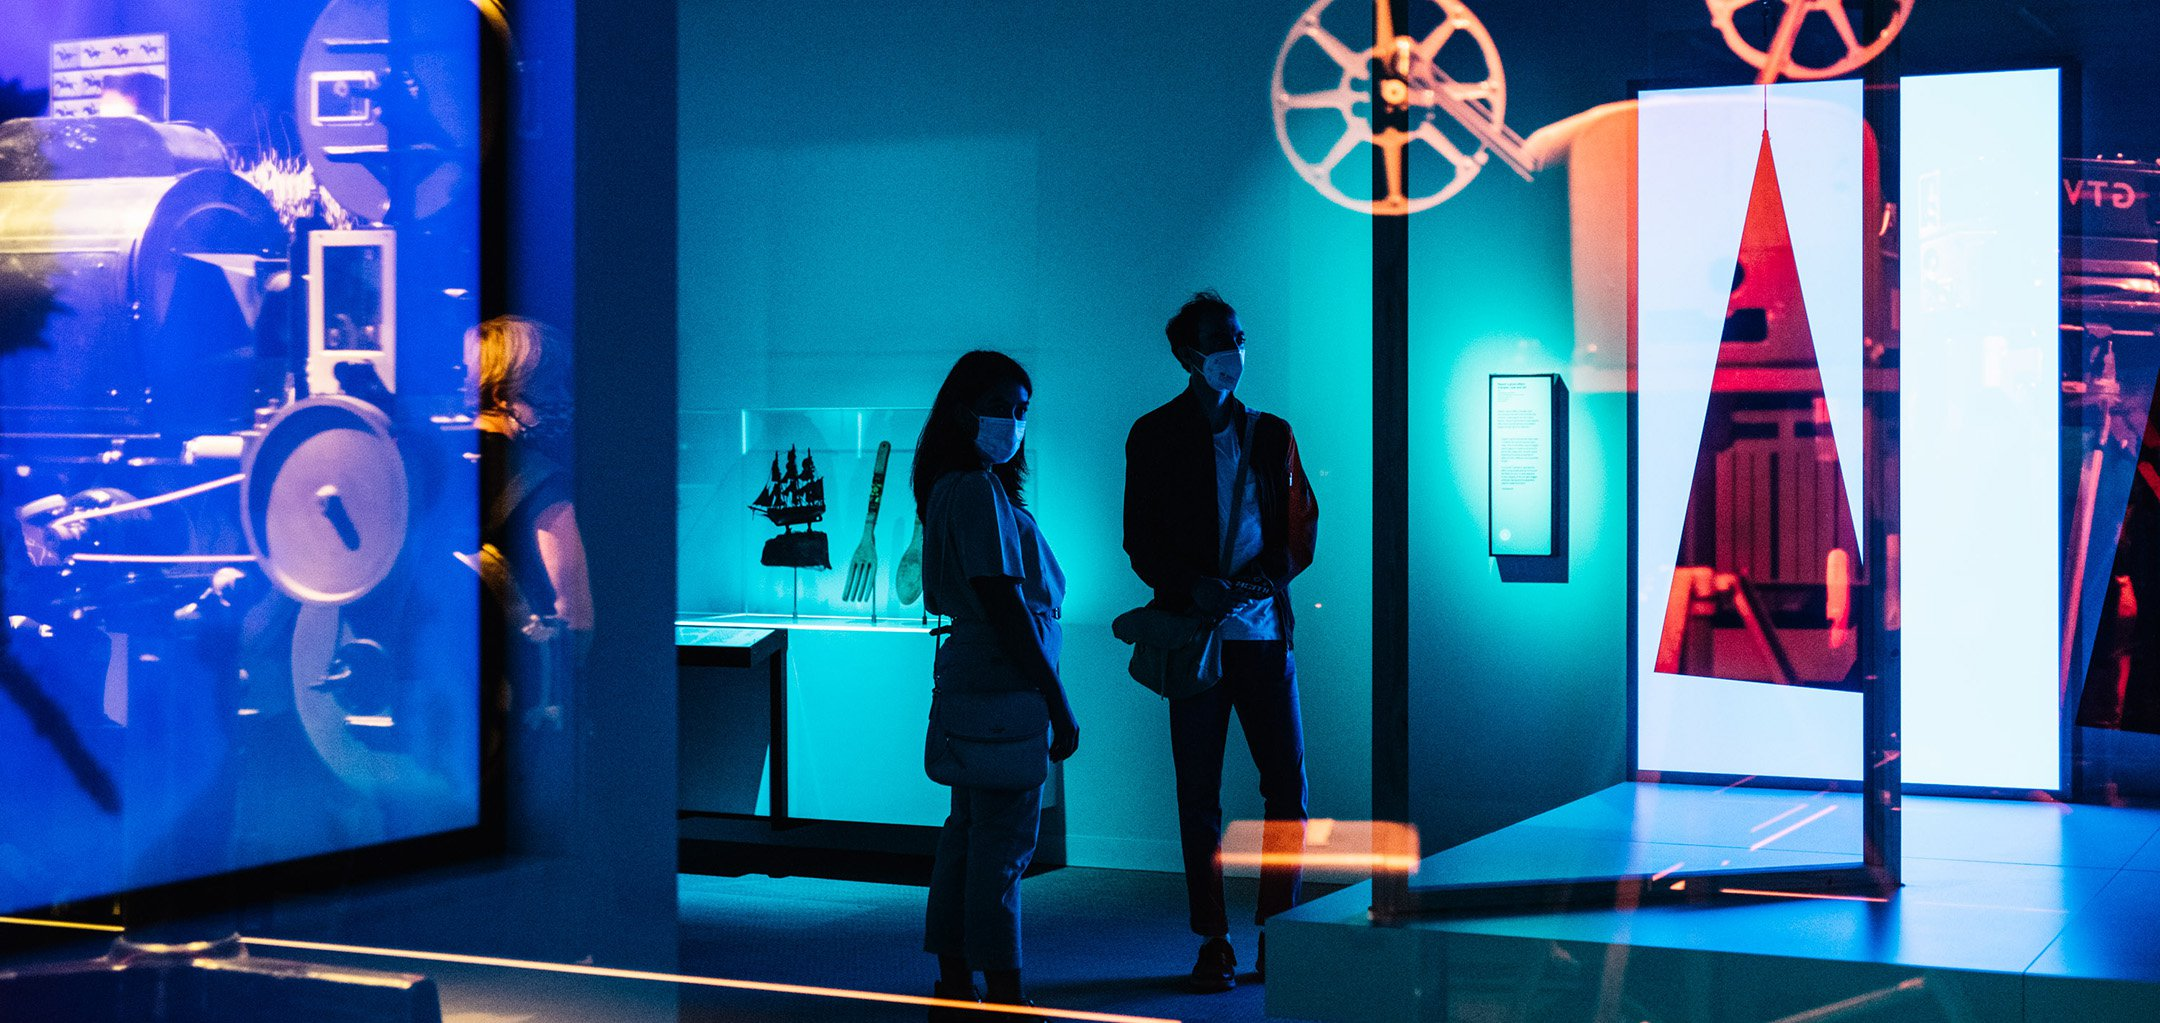 ACMI reopens Sat 30 Oct (image credit: Phoebe Powell)